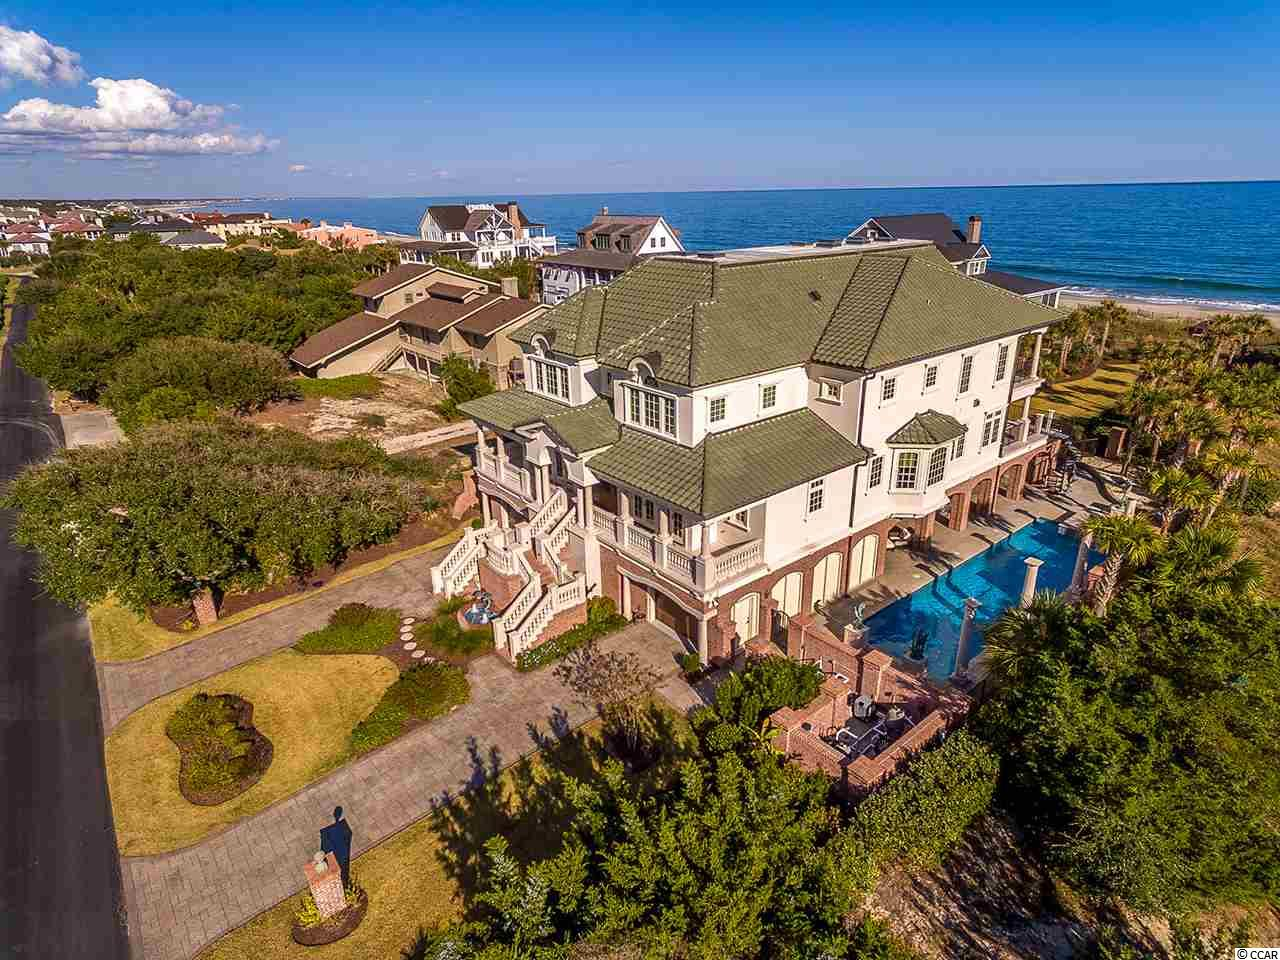 223 Pioneer Loop – Featuring the finest in oceanfront living in DeBordieu Colony. This custom-built home offers 5 bedrooms, 6.5 bathrooms and is masterfully designed sprawling over 15,000 sq. ft. Everything is custom with an emphasis on excellence and coastal charm. Property highlights include: black walnut flooring, central vacuum system, custom alder doors, security system, whole house surround sound, 3 fire places, geothermal salter water pool (heated), whole house generator...just to name a few.   DeBordieu Colony is an oceanfront community located just south of Pawleys Island, South Carolina featuring private golf and tennis, saltwater creek access to the ocean, a manned security gate, and luxury homes and villas surrounded by hundreds of acres of wildlife and nature preserves.